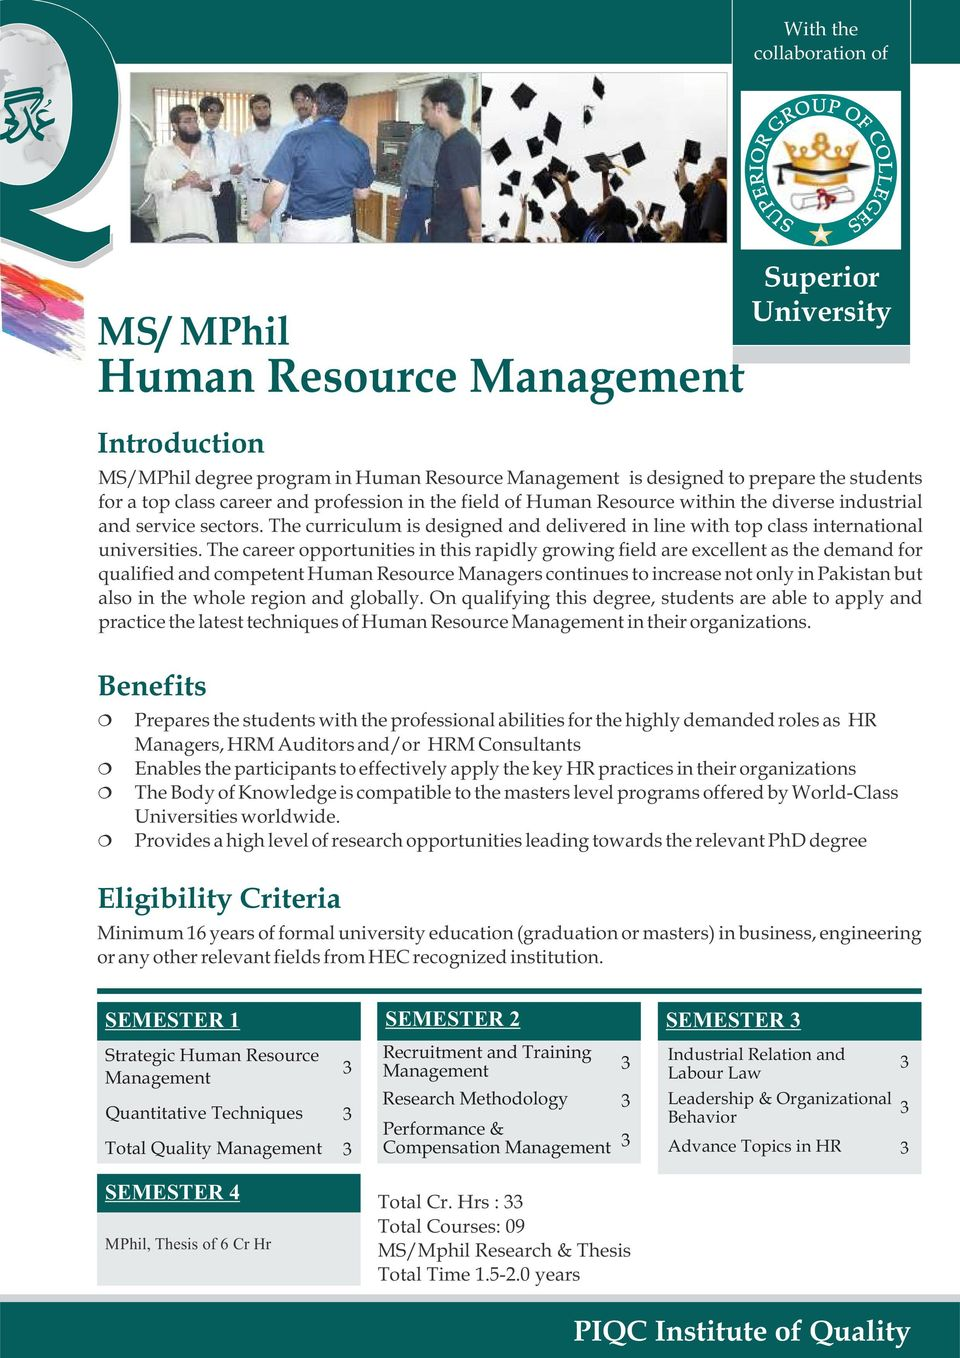 The career opportunities in this rapidly growing field are excellent as the demand for qualified and competent Human Resource Managers continues to increase not only in Pakistan but also in the whole